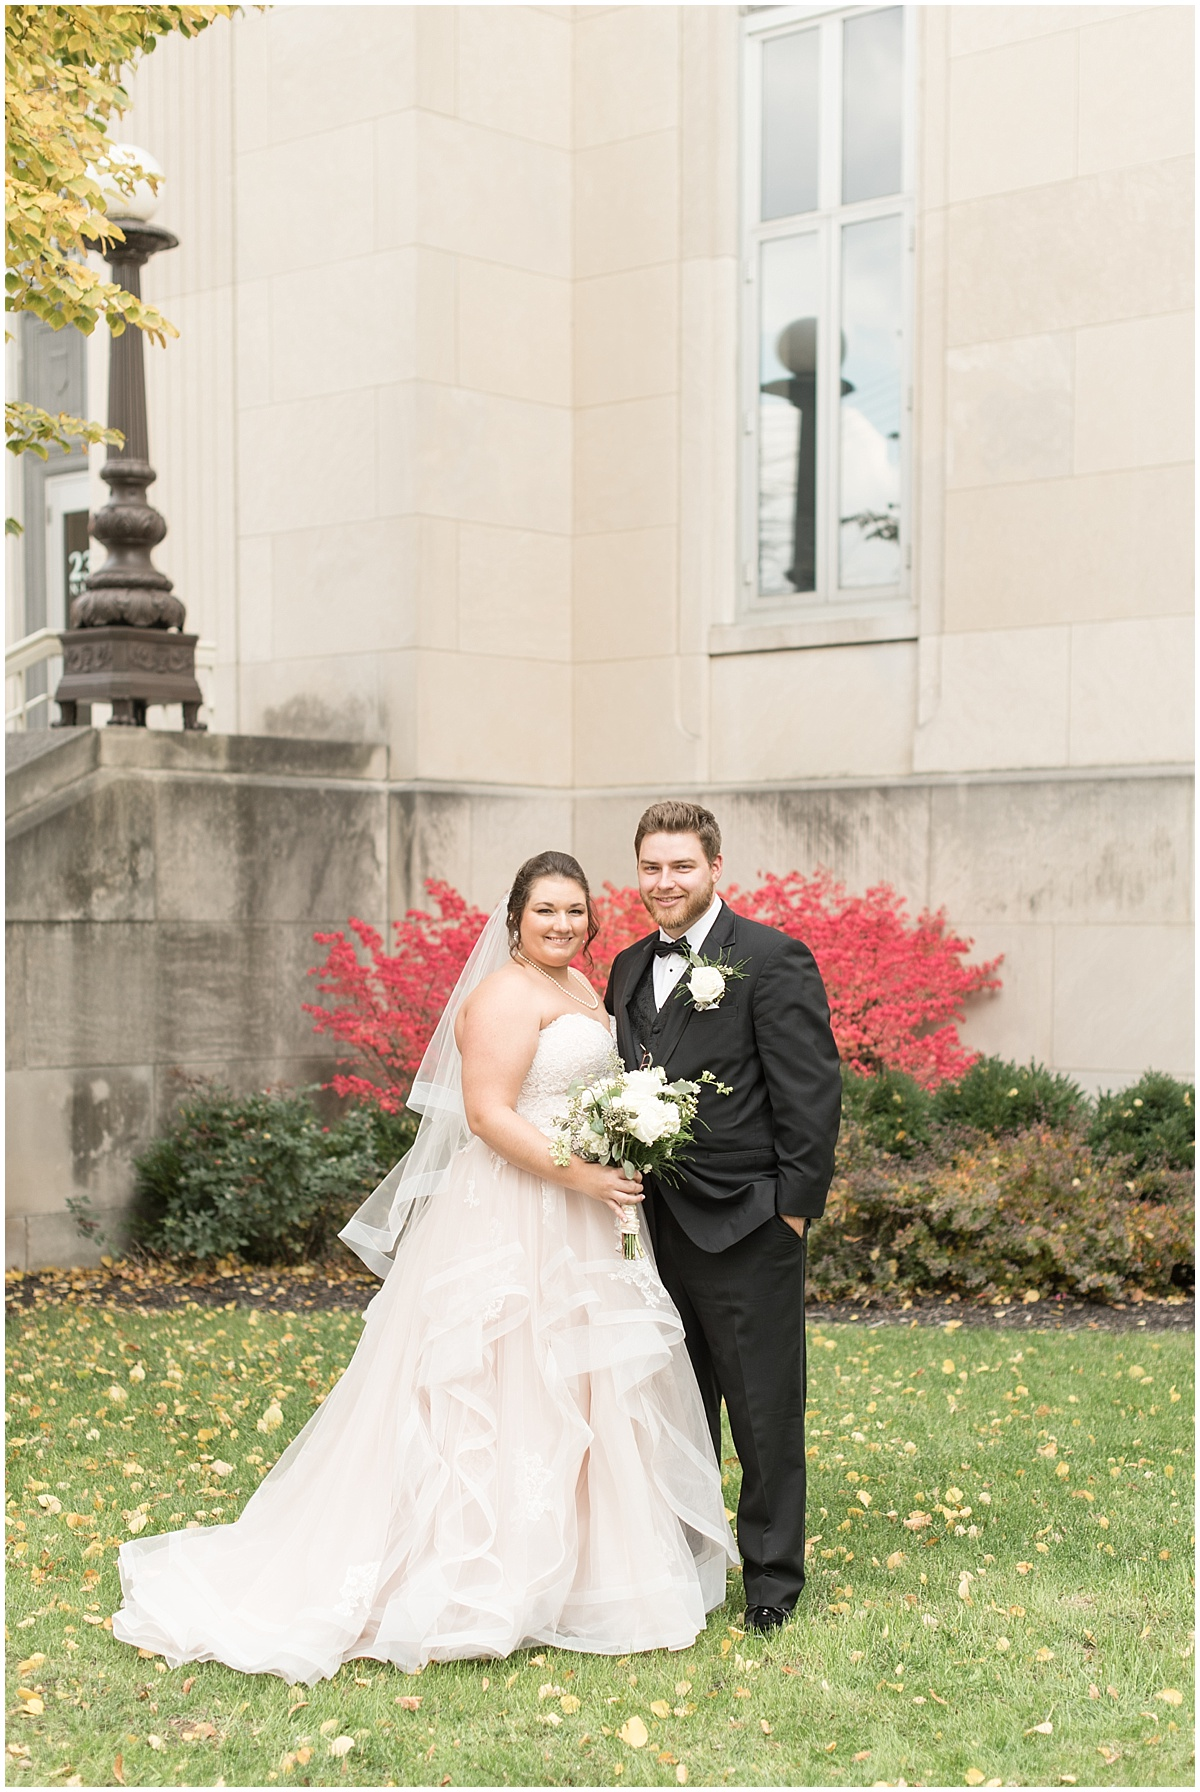 Chris and Ashley Peterson - Wedding at the Jasper County Fairgrounds in Rensselaer, Indiana94.jpg